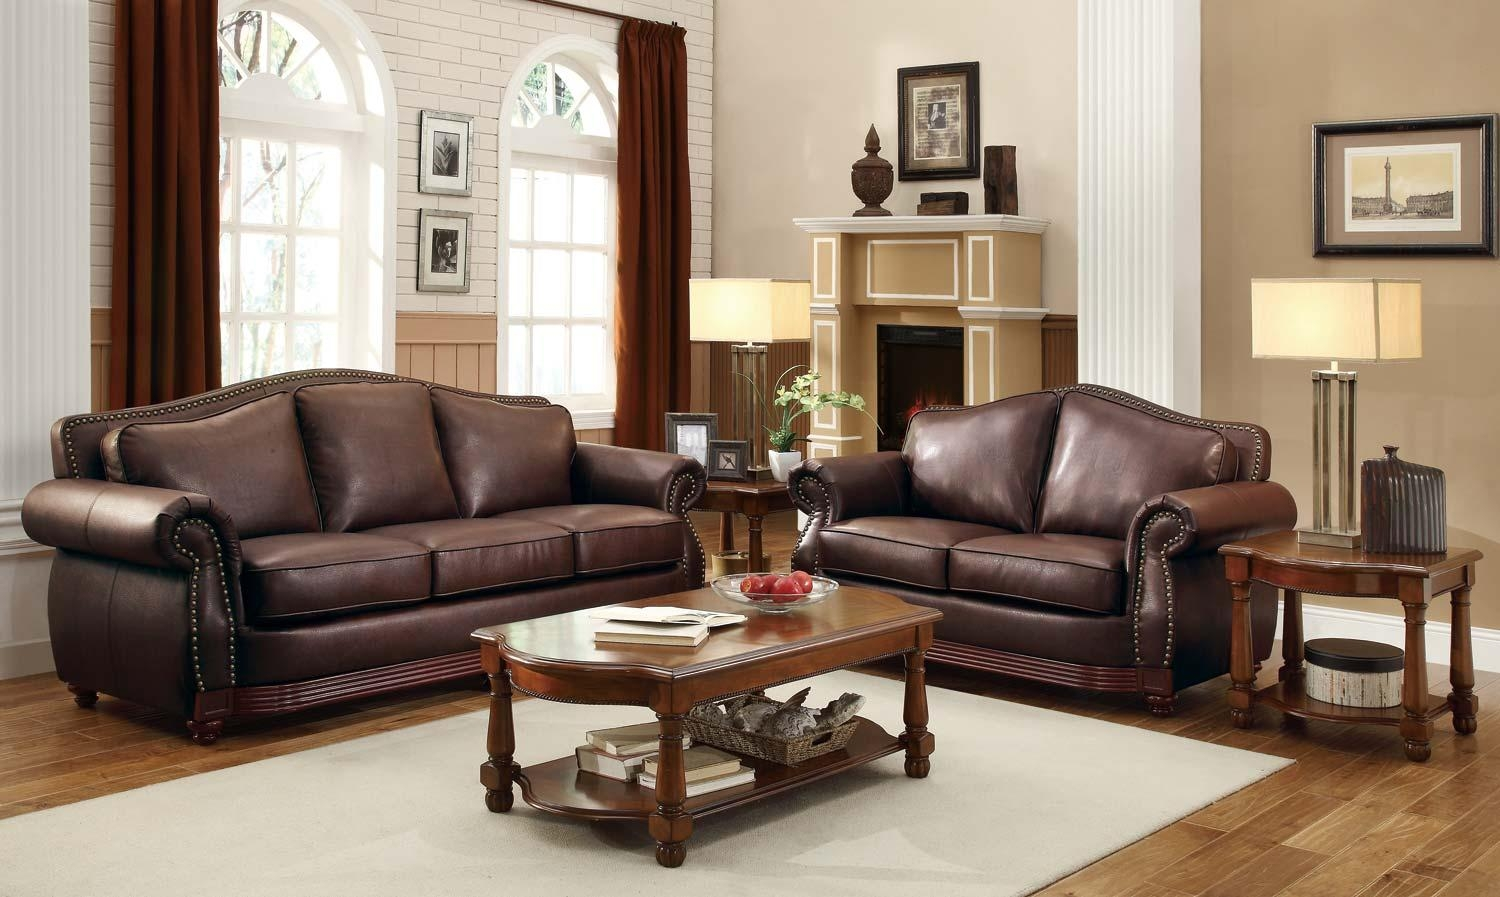 Homelegance Midwood Bonded Leather Sofa Collection – Dark Brown Throughout Homelegance Sofas (Image 13 of 20)